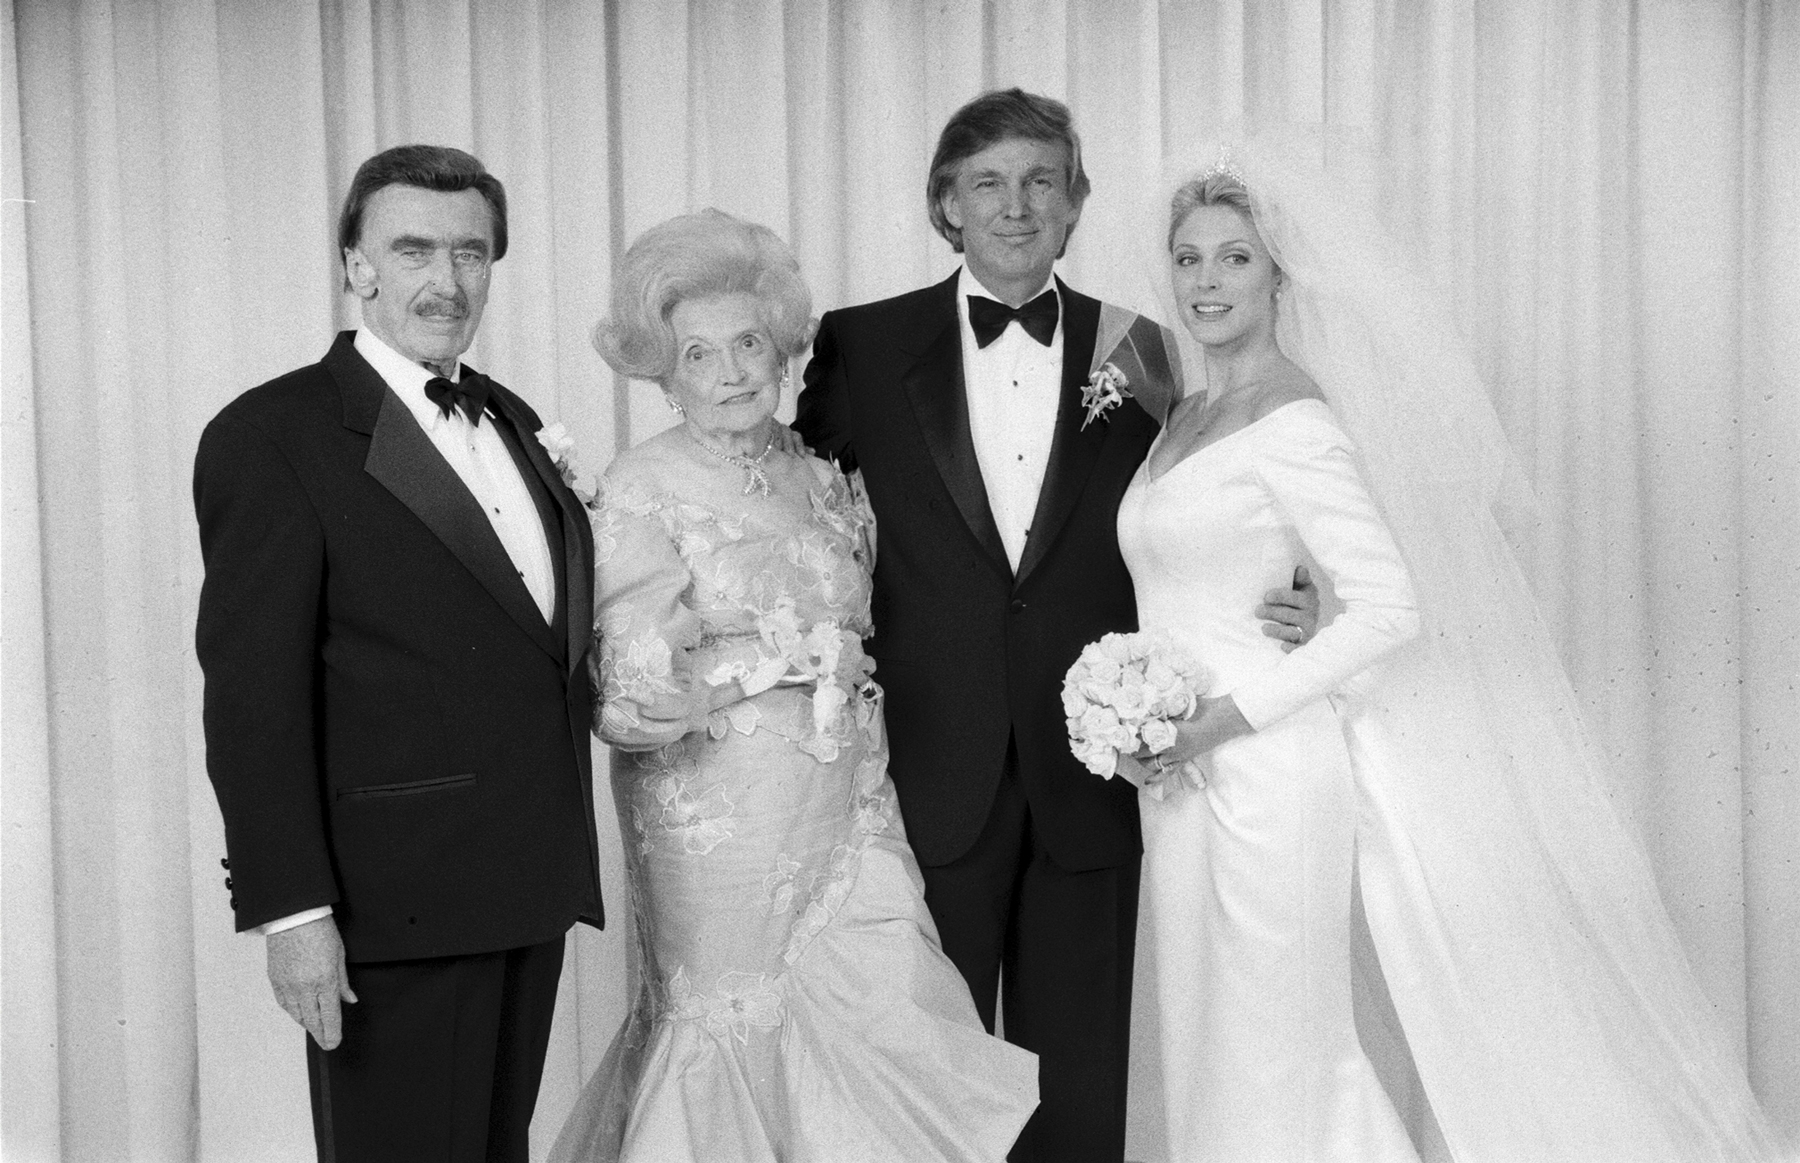 A&E Gives First Look at 'Biography: The Trump Dynasty' Docuseries